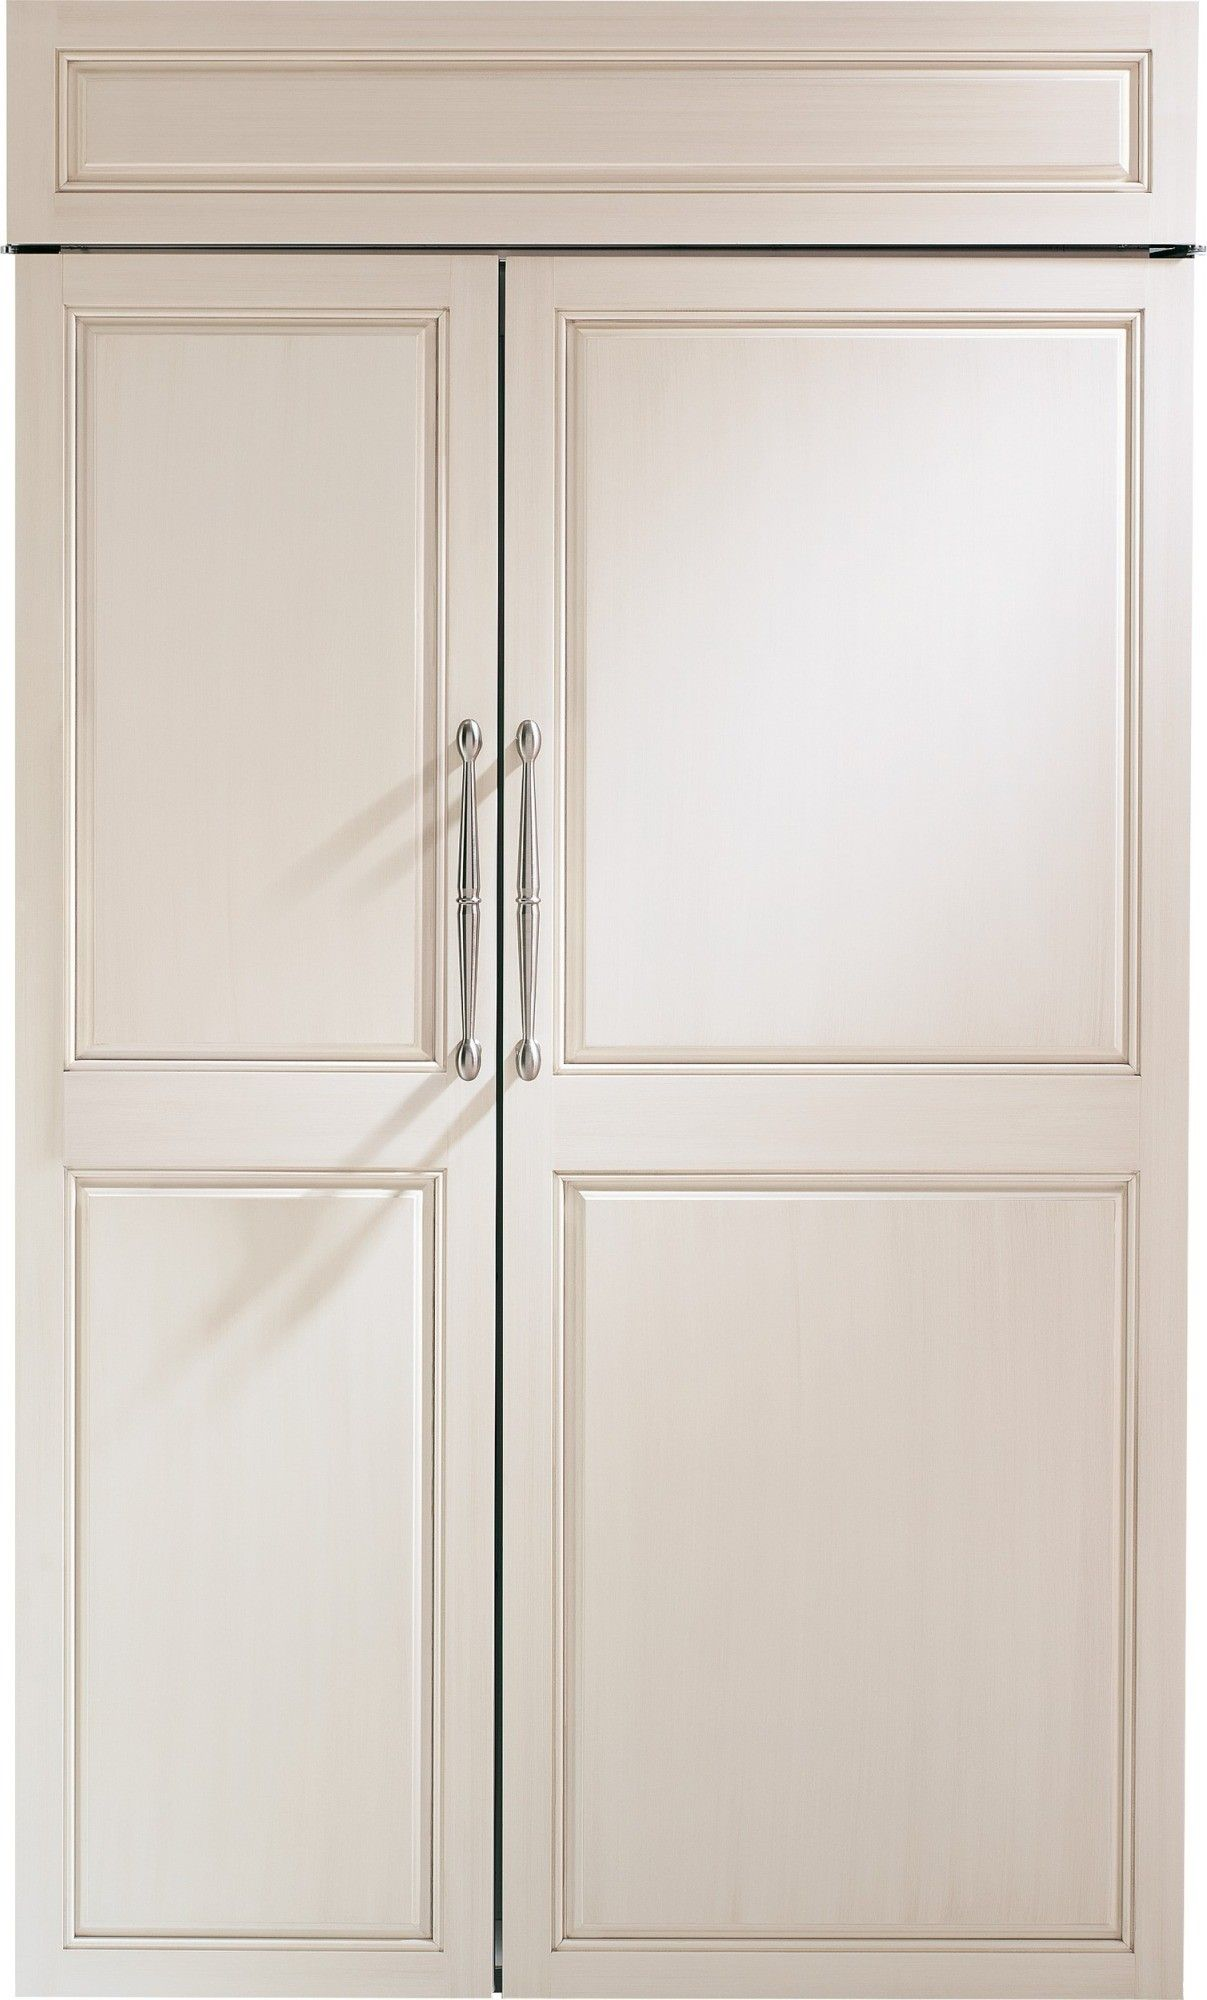 Monogram Zis480nk 48 Built In Refrigerator With Wifi Connect Custom Panel Ready